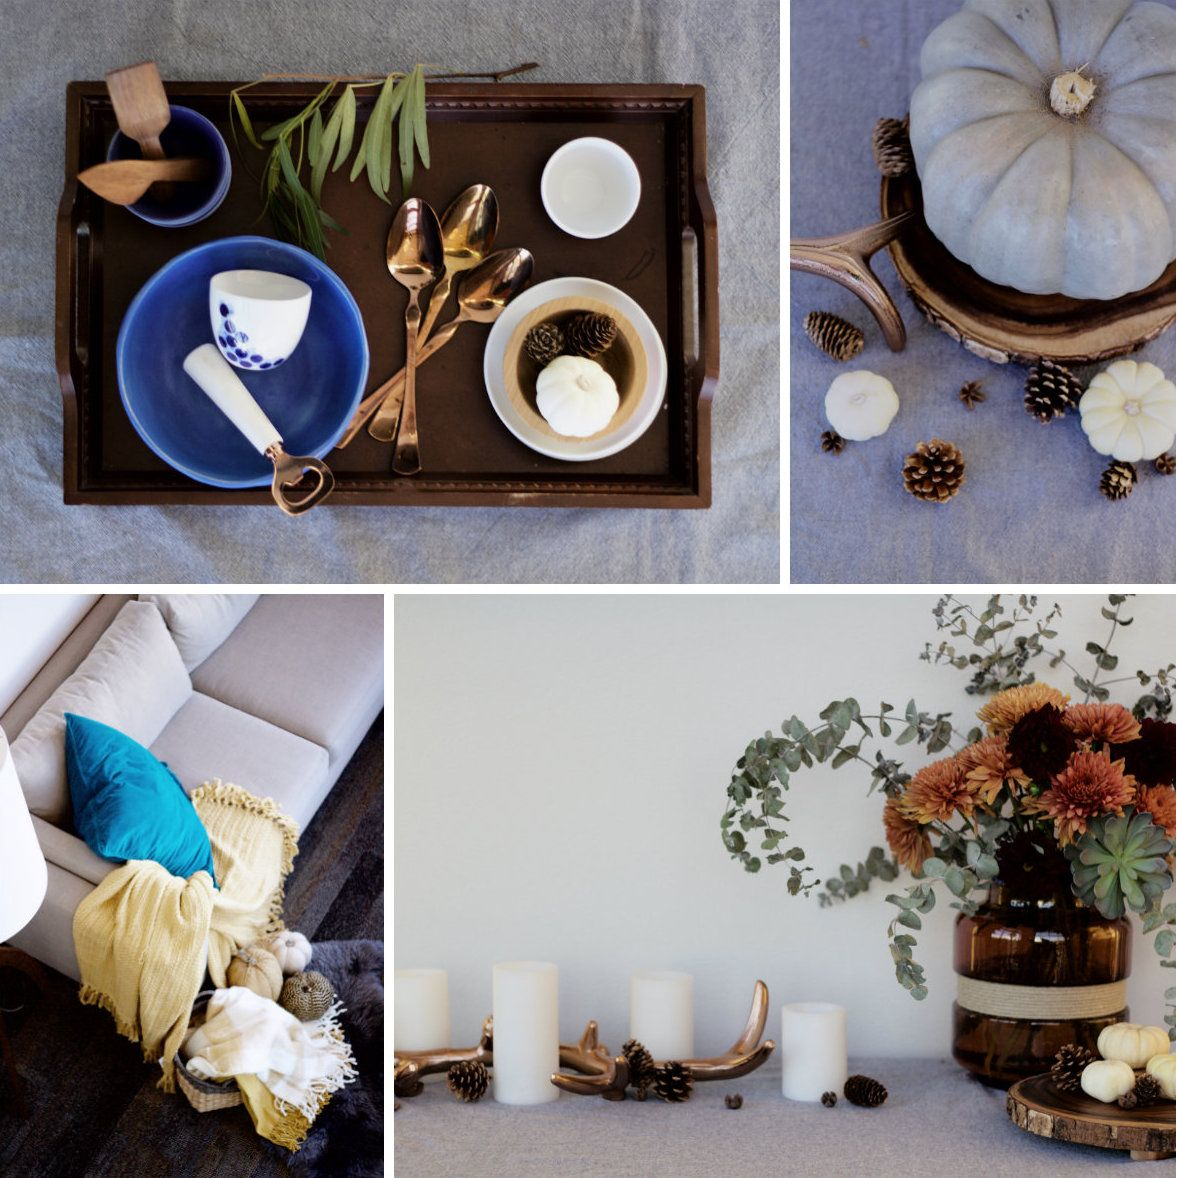 10 QUICK + SIMPLE WAYS TO TRANSITION YOUR HOME FOR THANKSGIVING